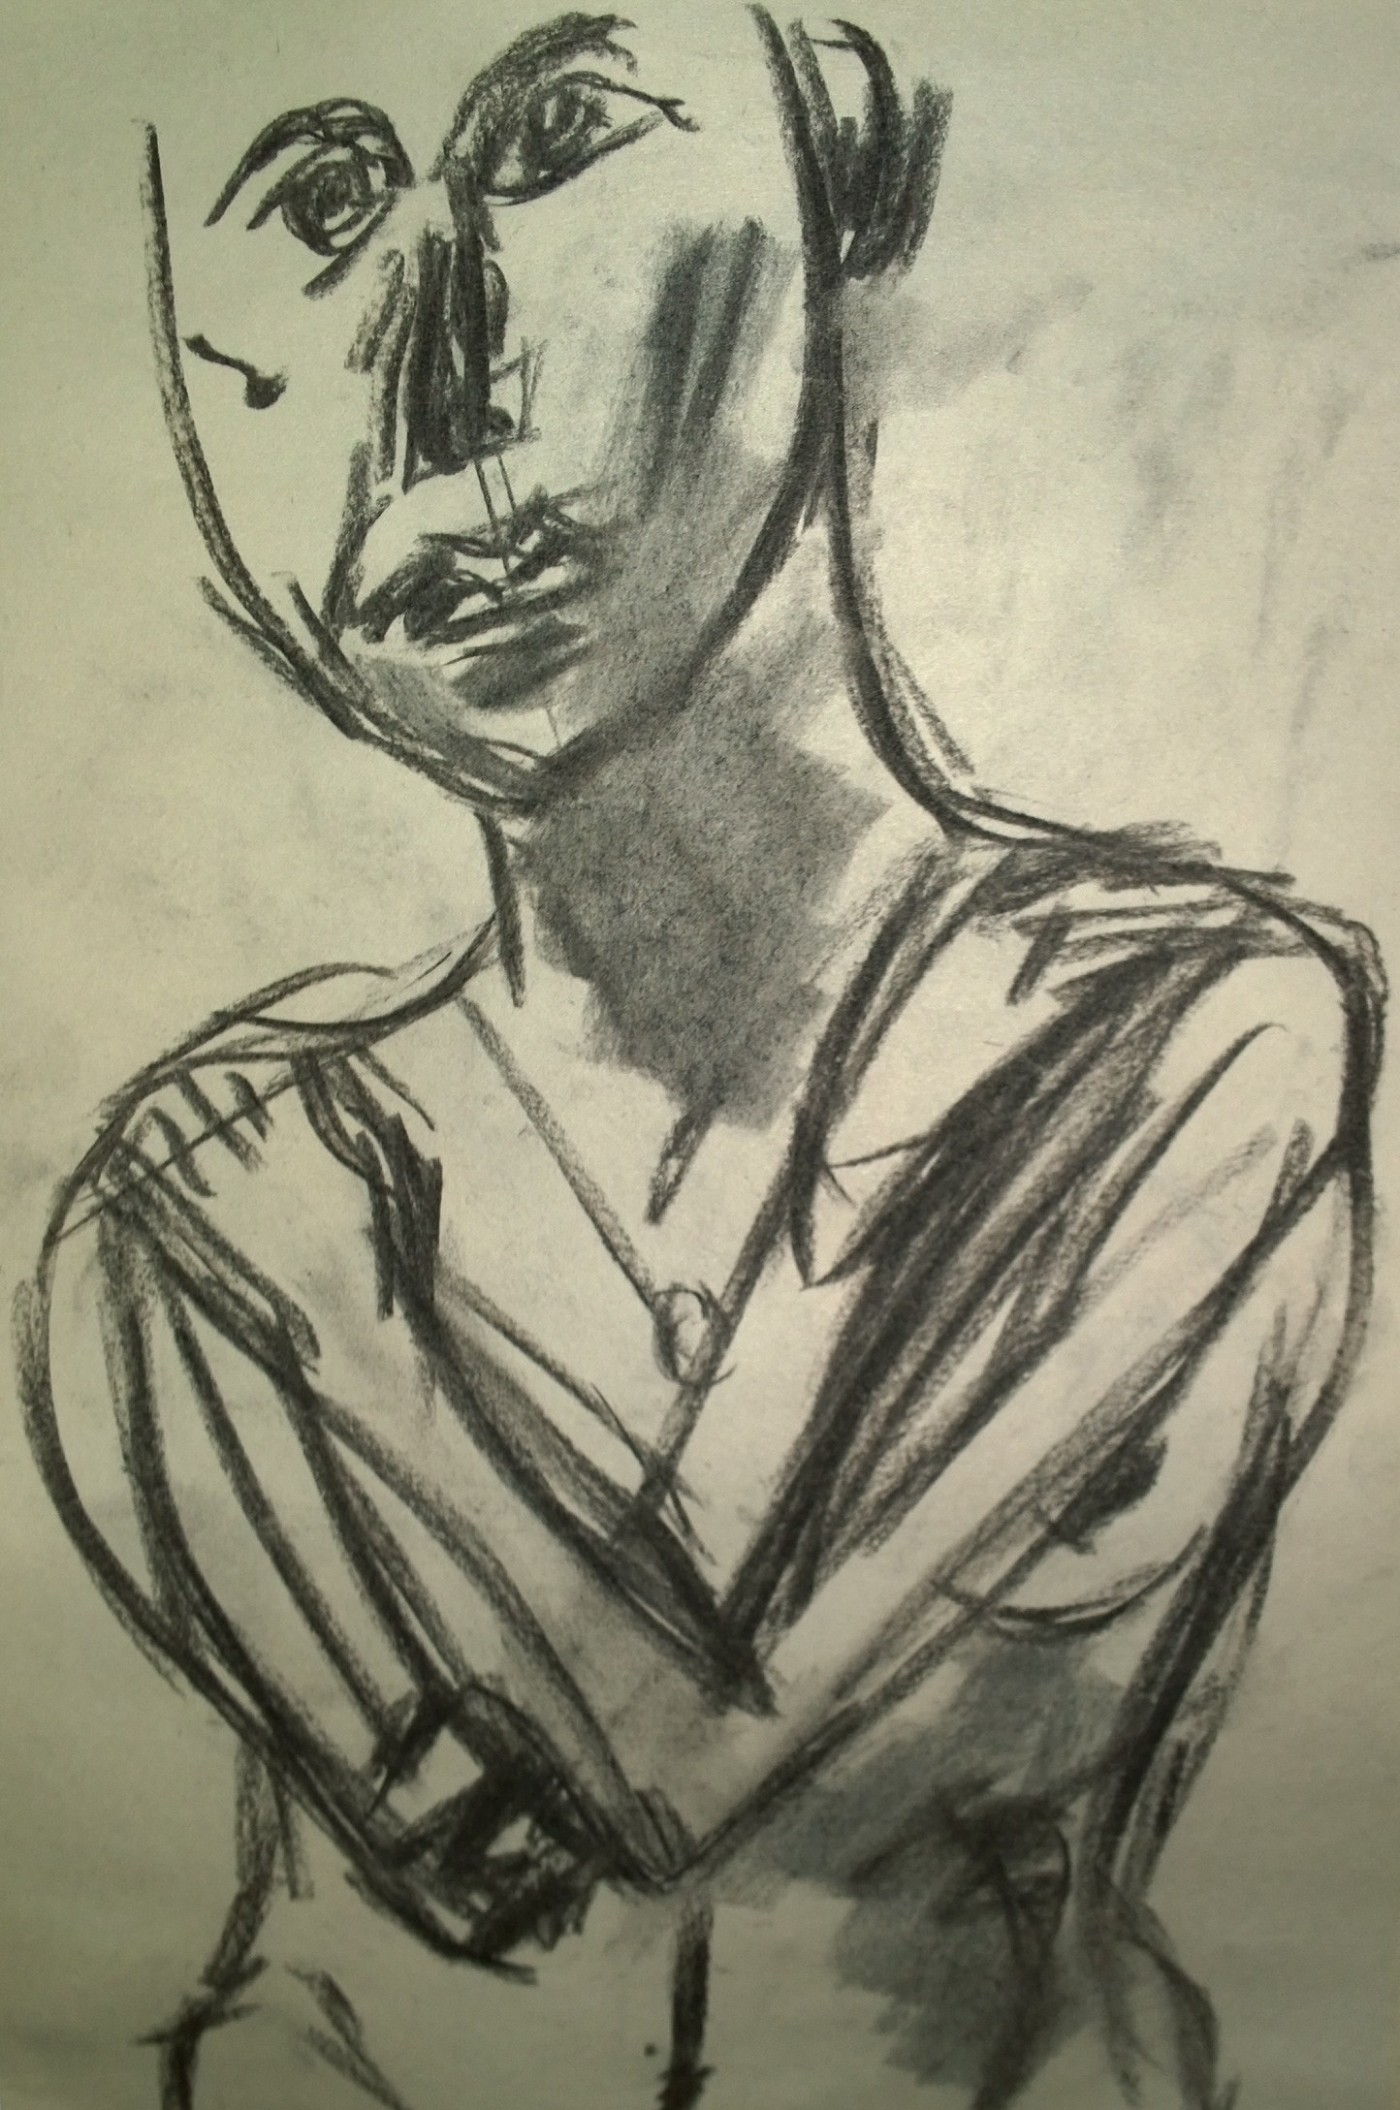 Nude modeling (young woman), charcoal drawing by William Eaton